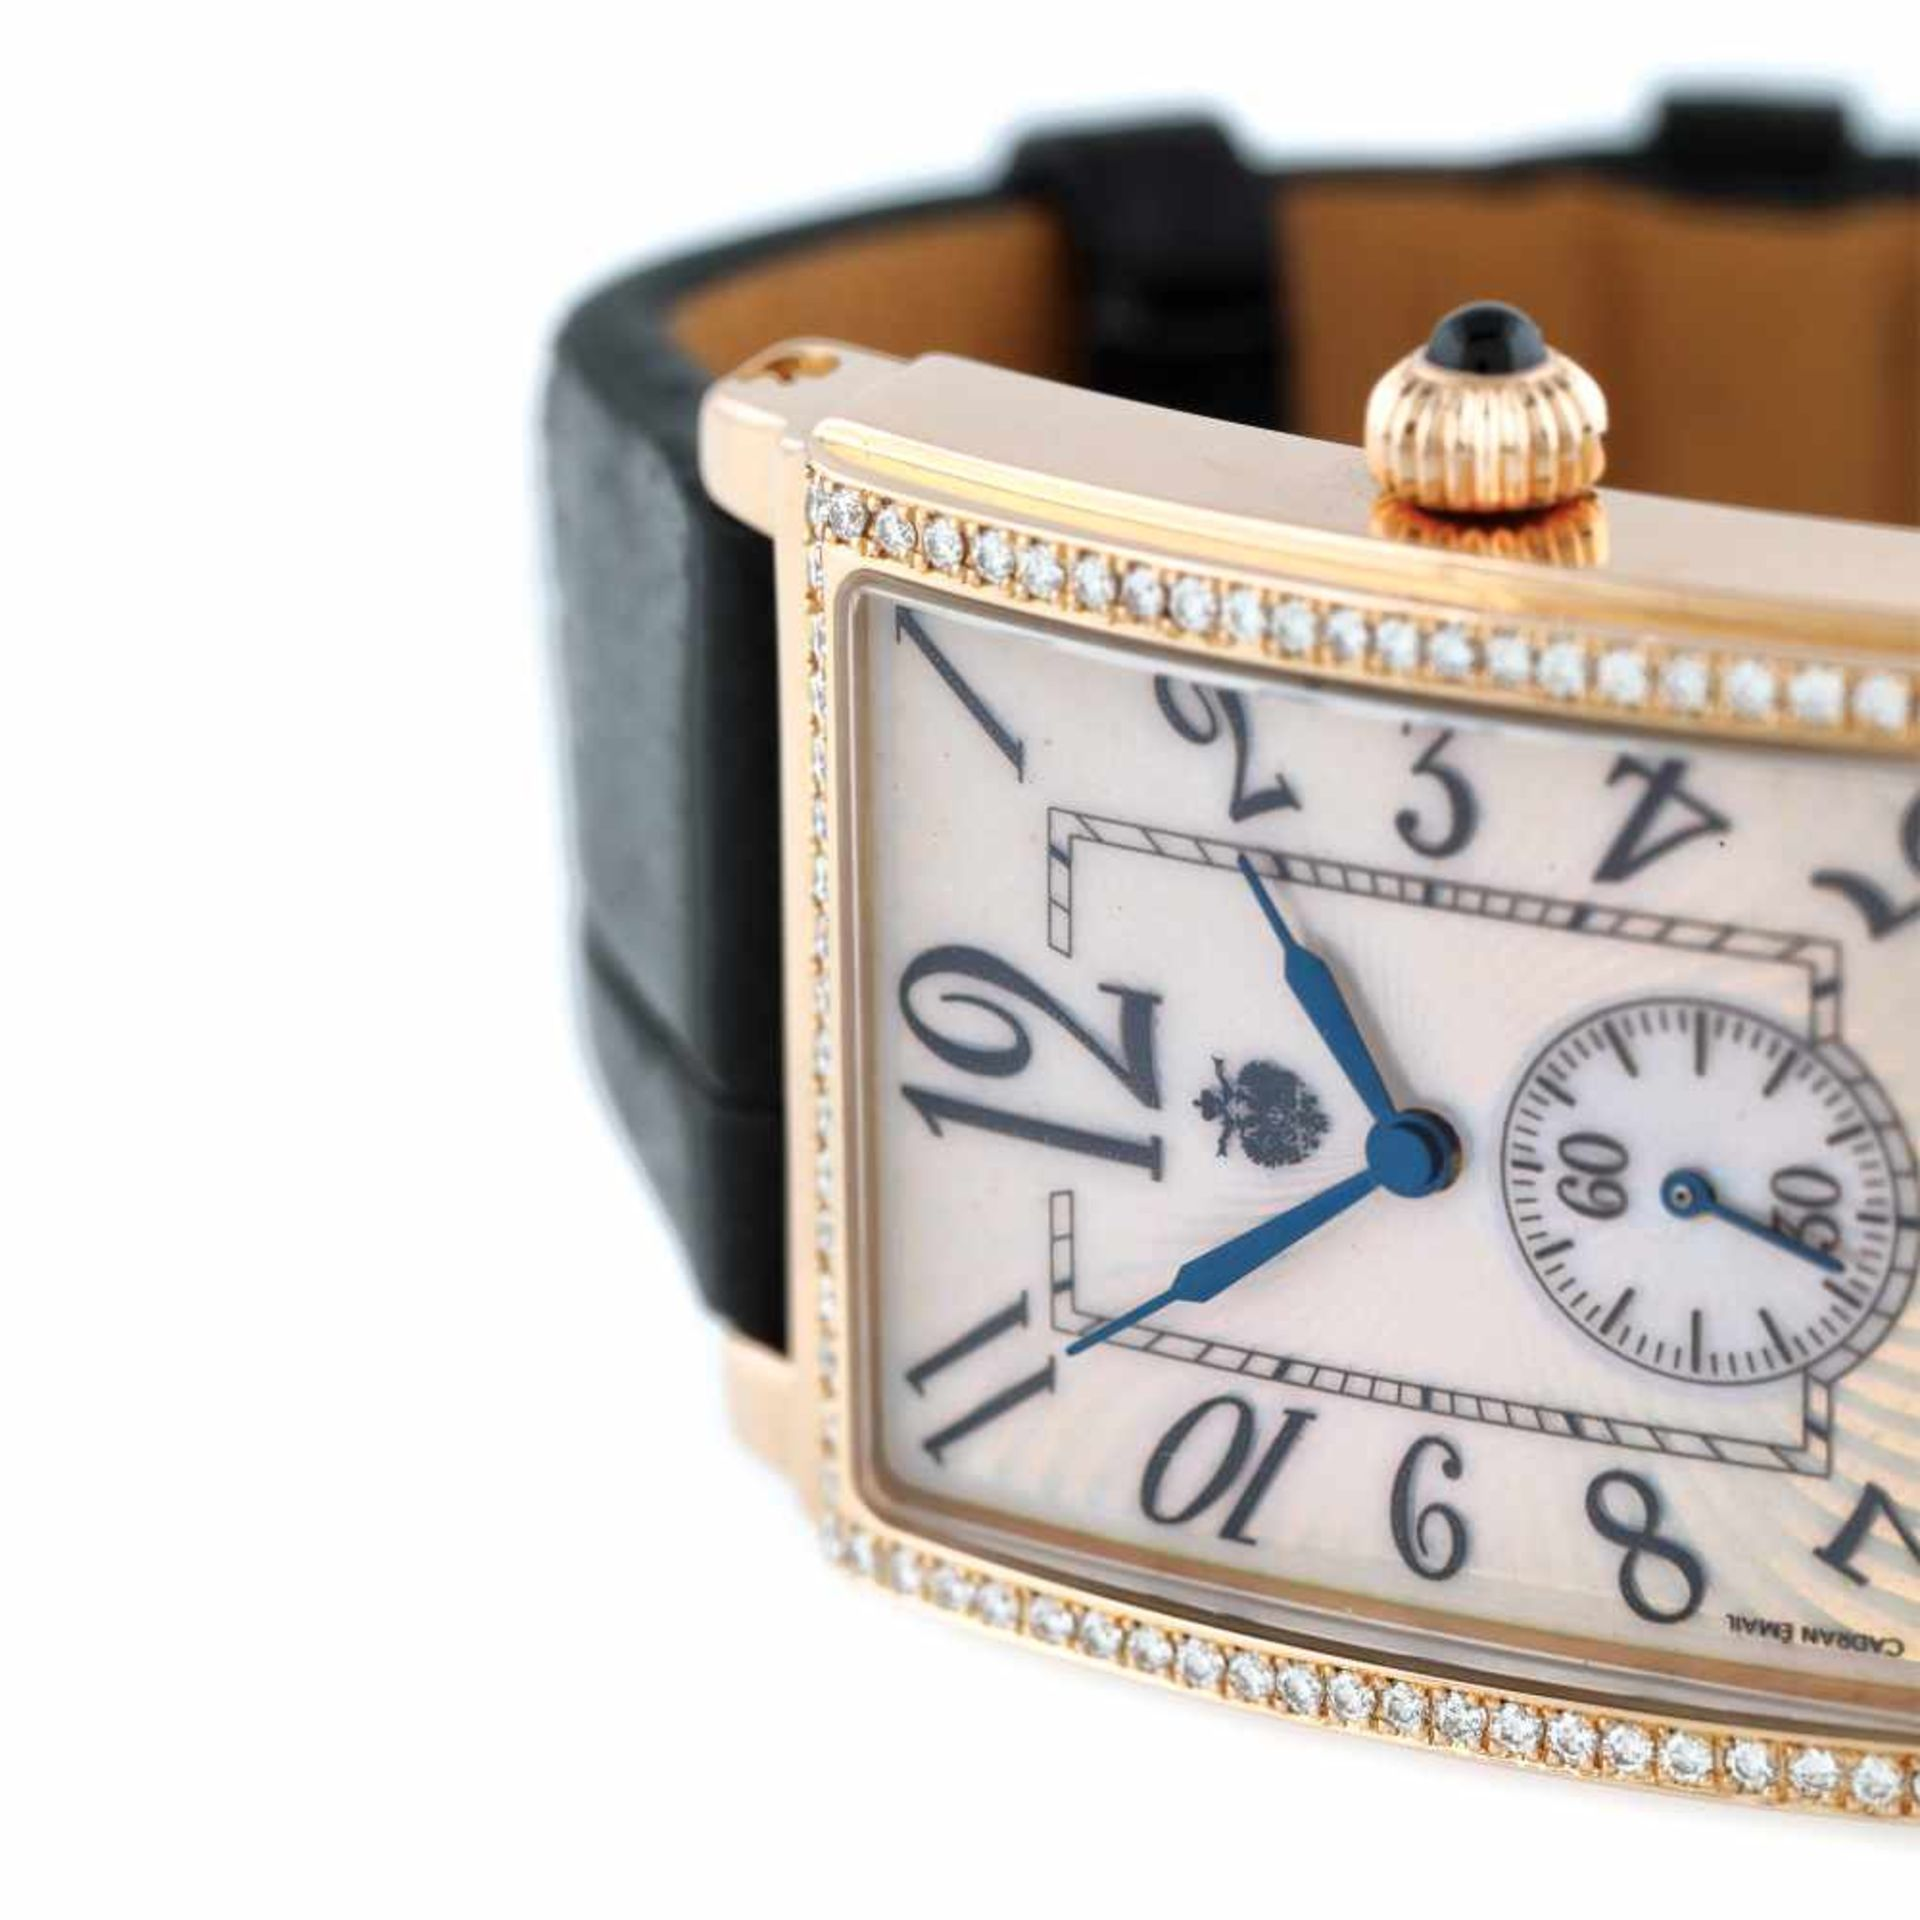 Fabergé Nr: 6 wristwatch, rose gold, diamond-paved bezel, women - Bild 2 aus 3